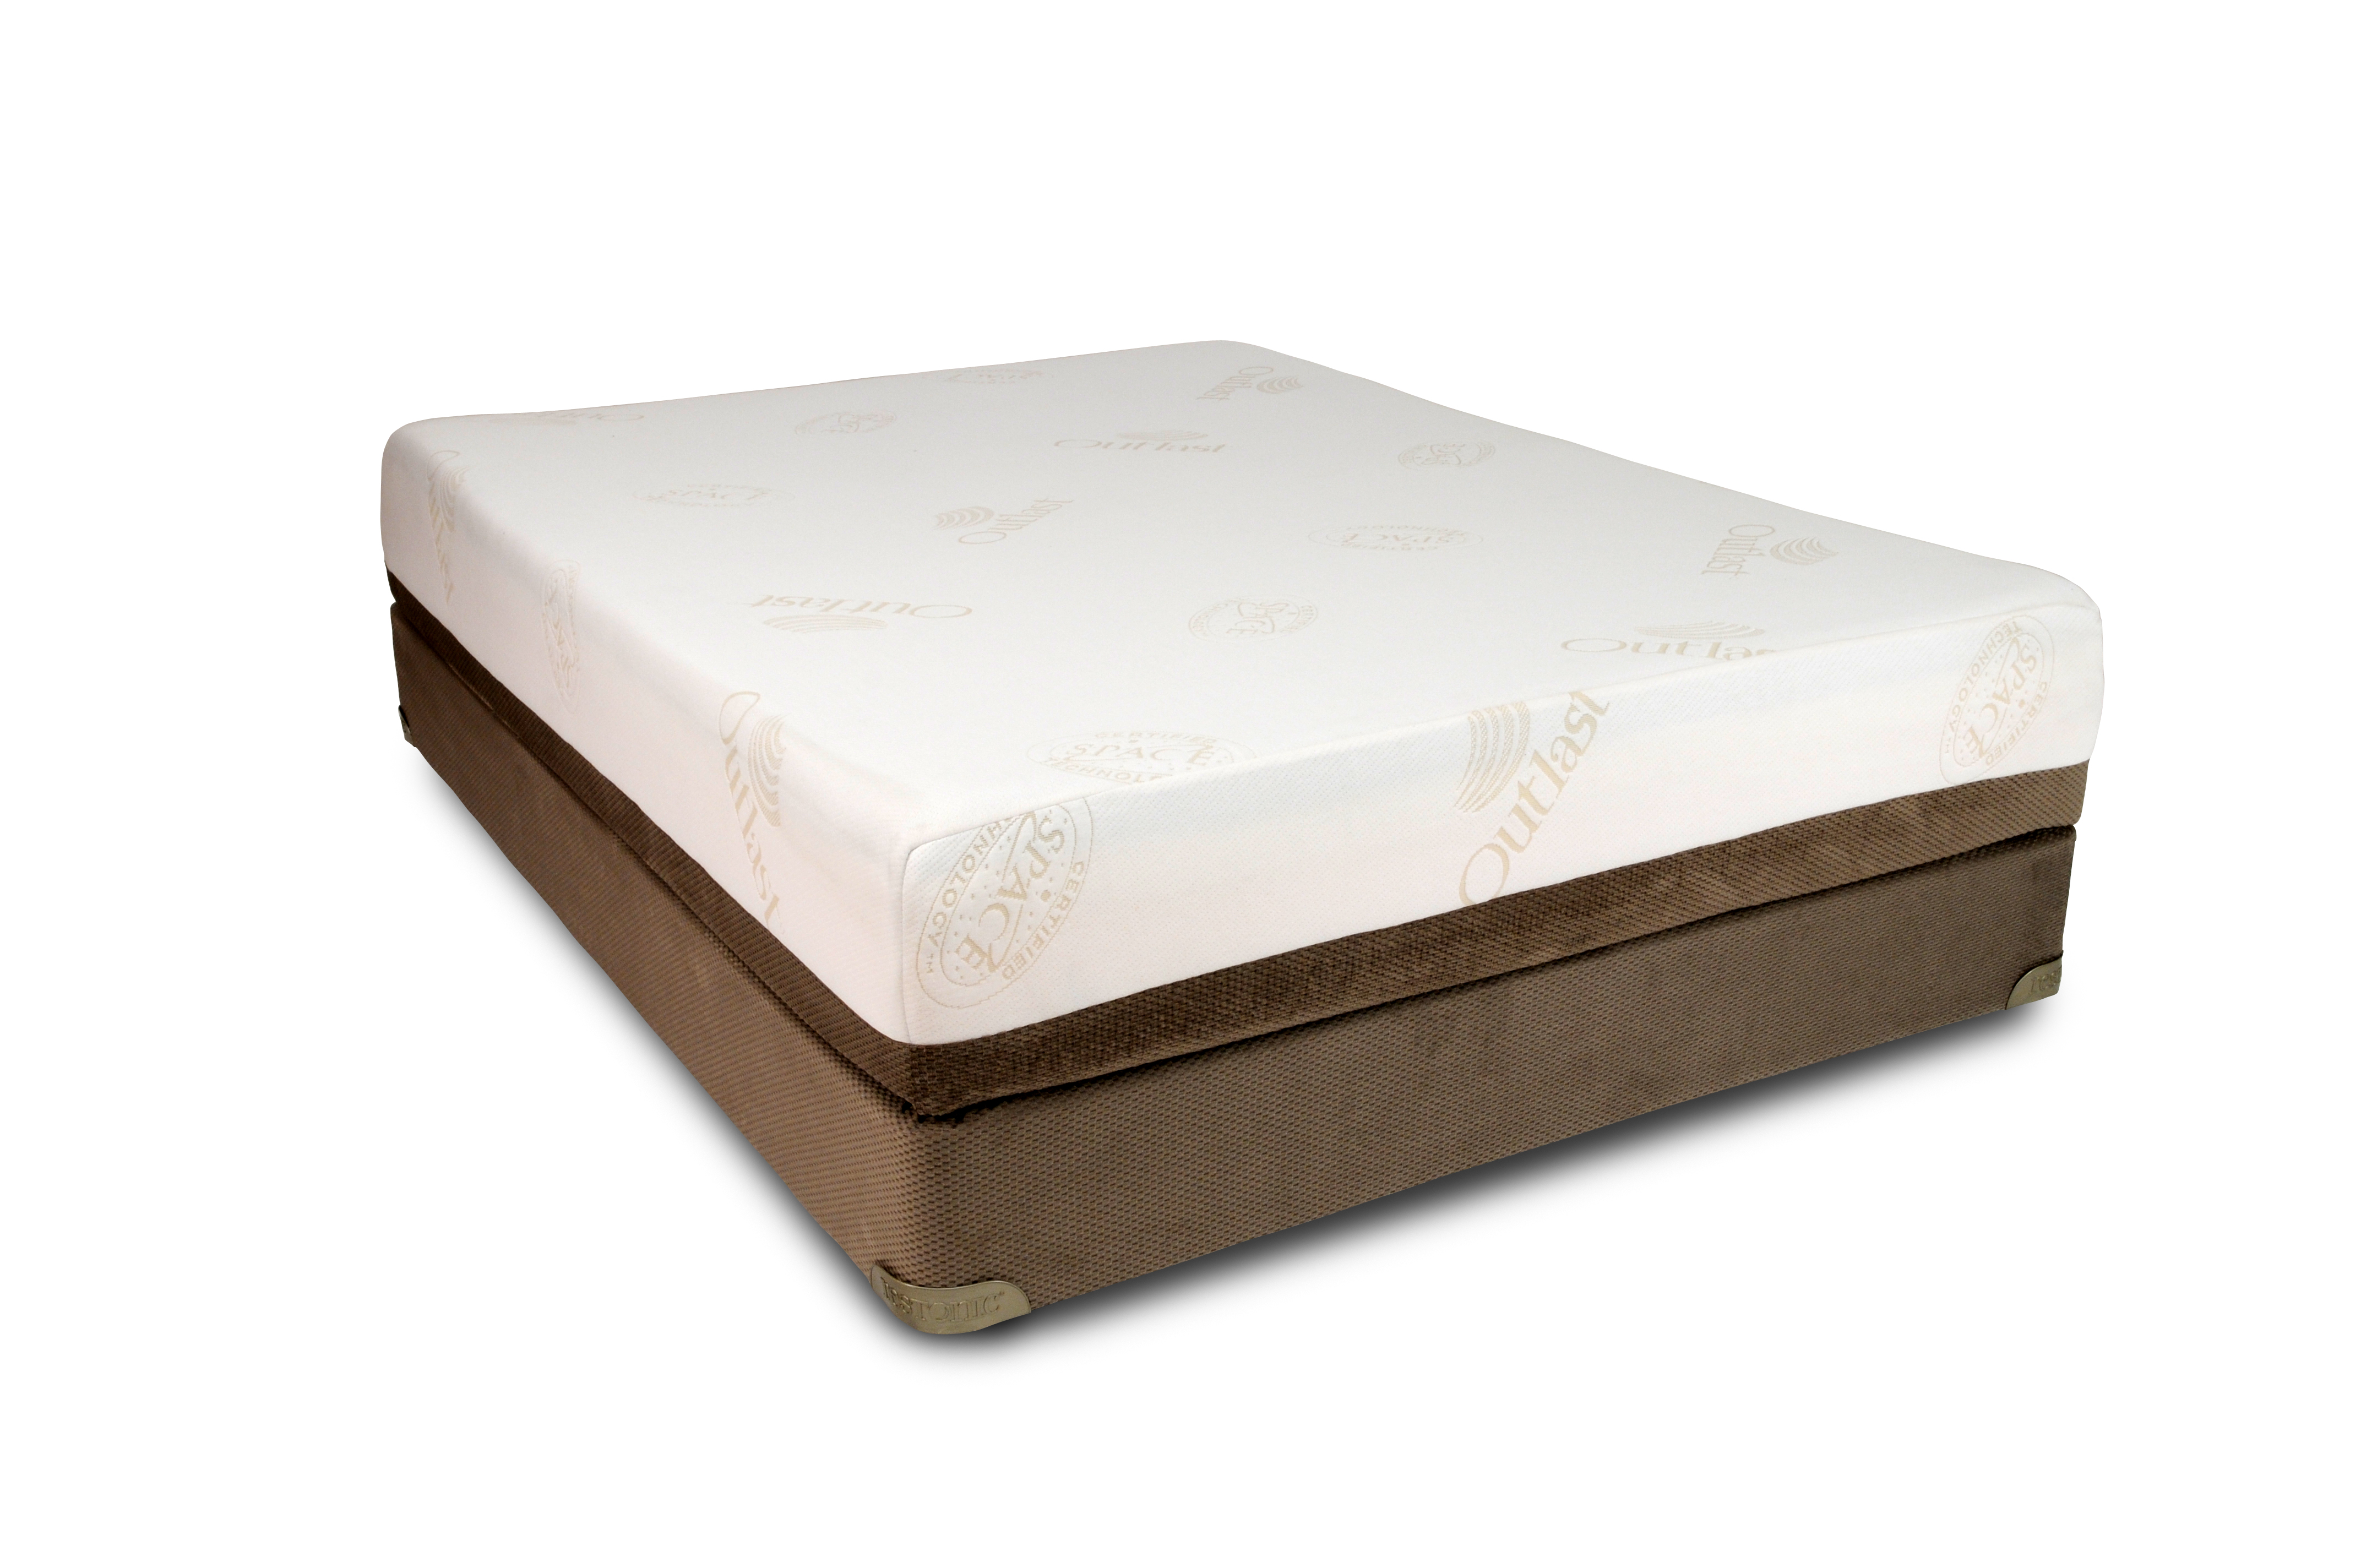 box crystalfrost and protector top queen tight luxury spring with boxspring mattress discounters